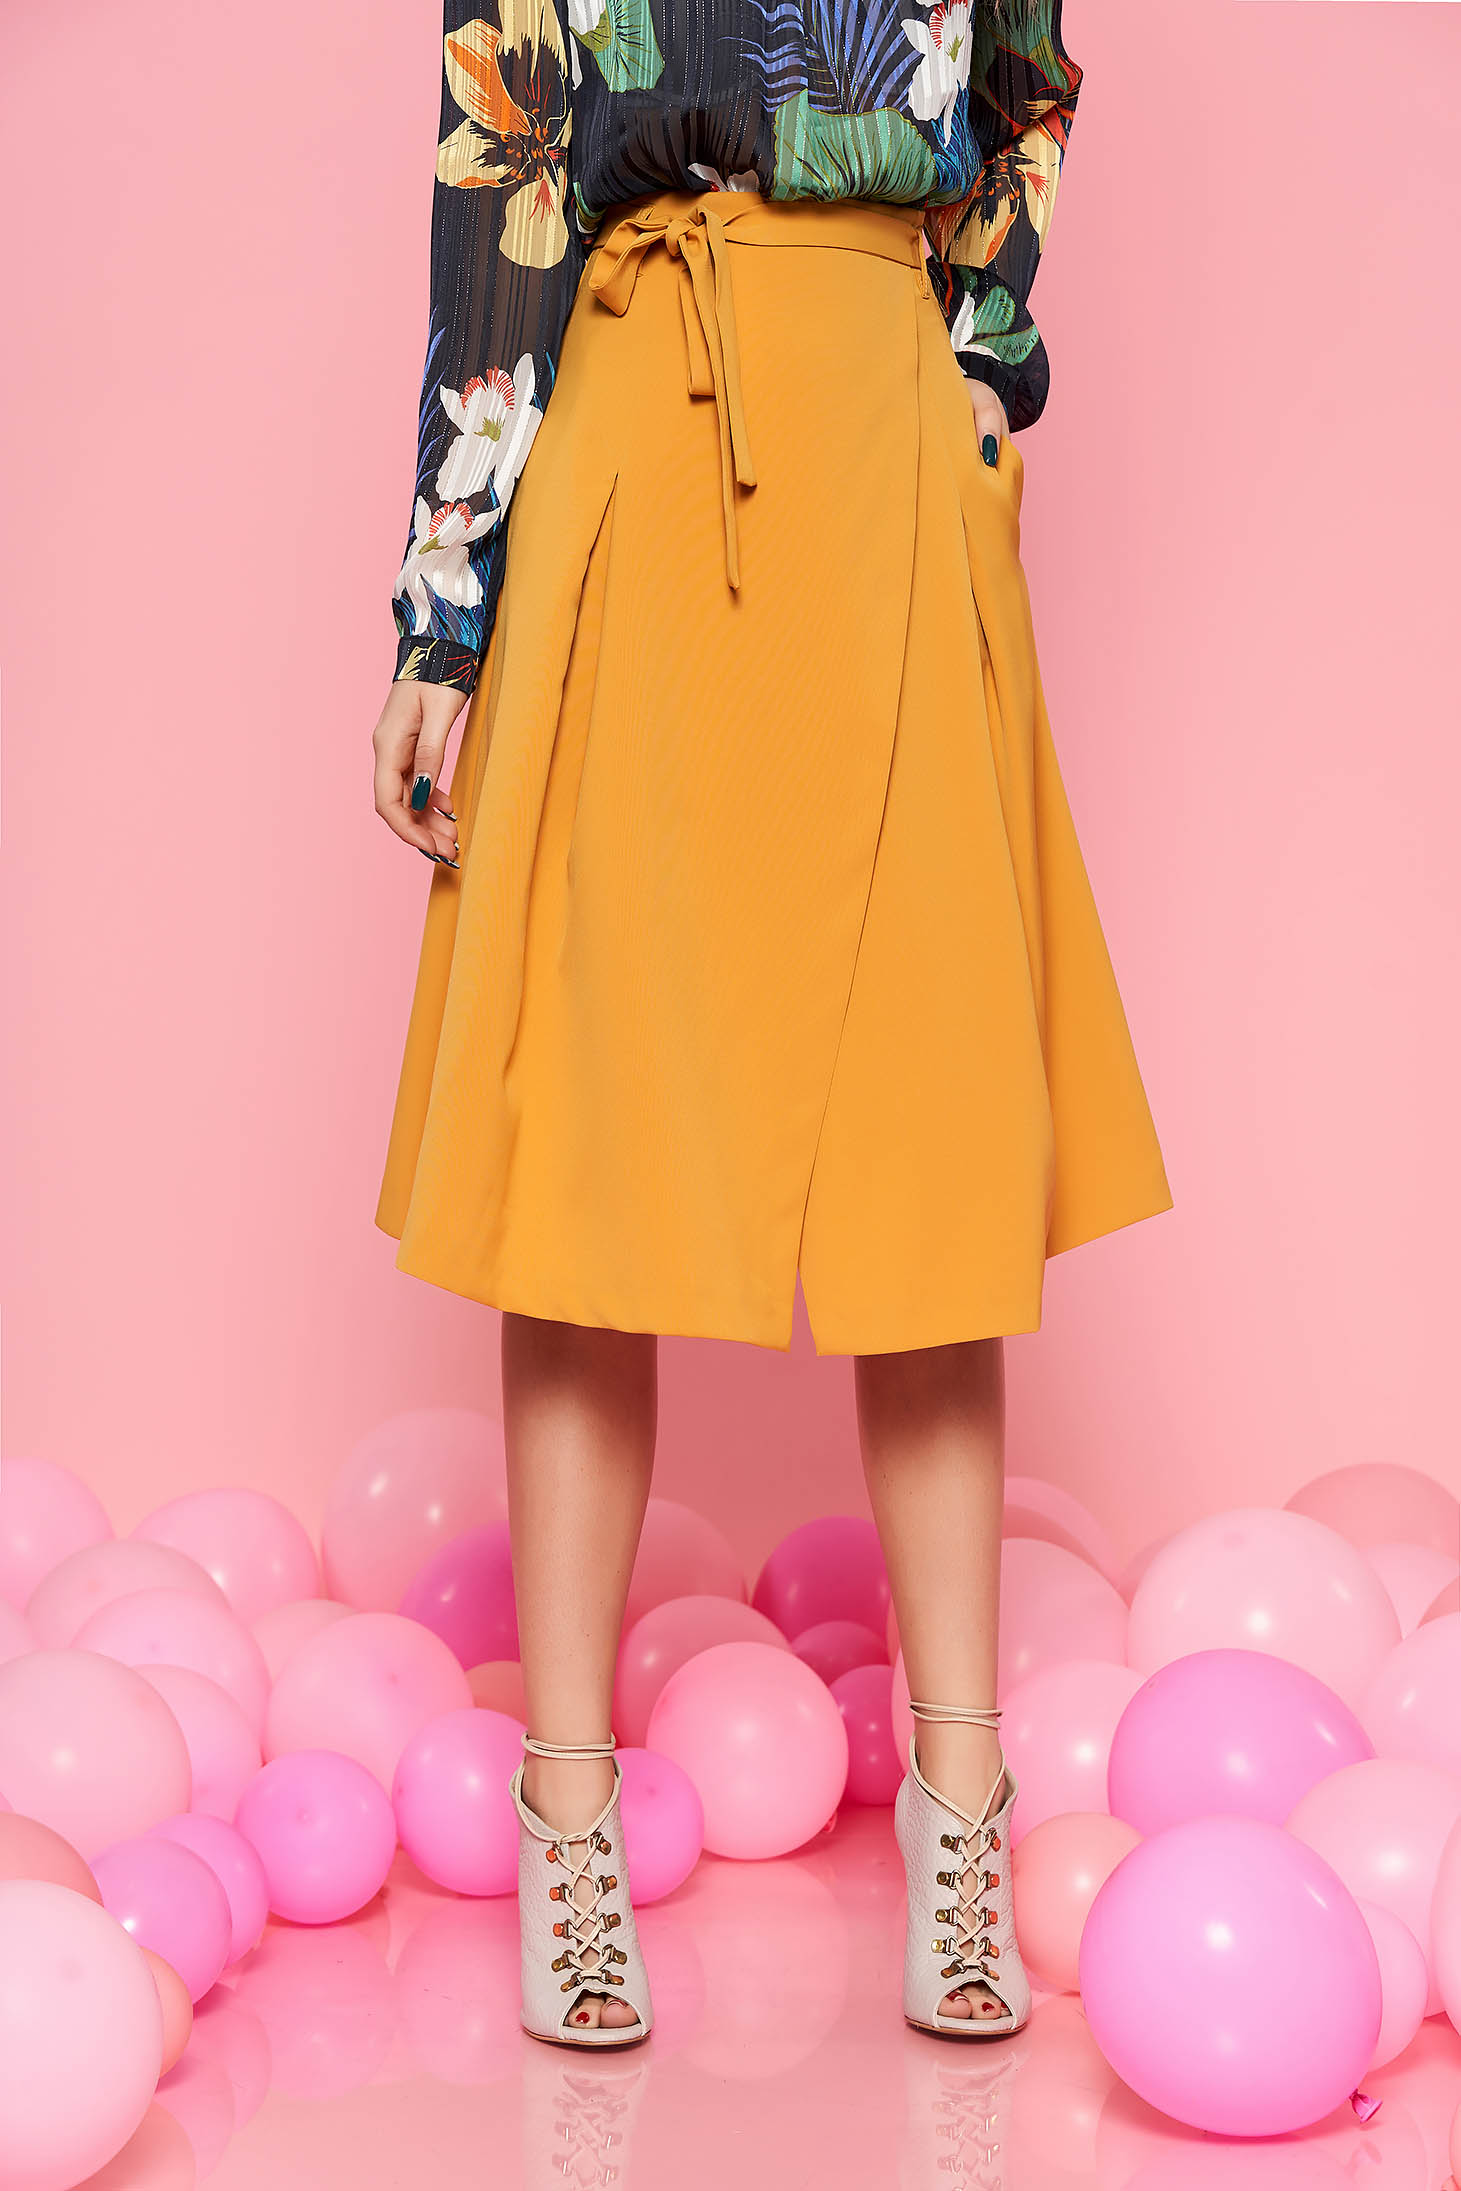 Top Secret yellow skirt casual high waisted cloche slightly elastic fabric accessorized with tied waistband